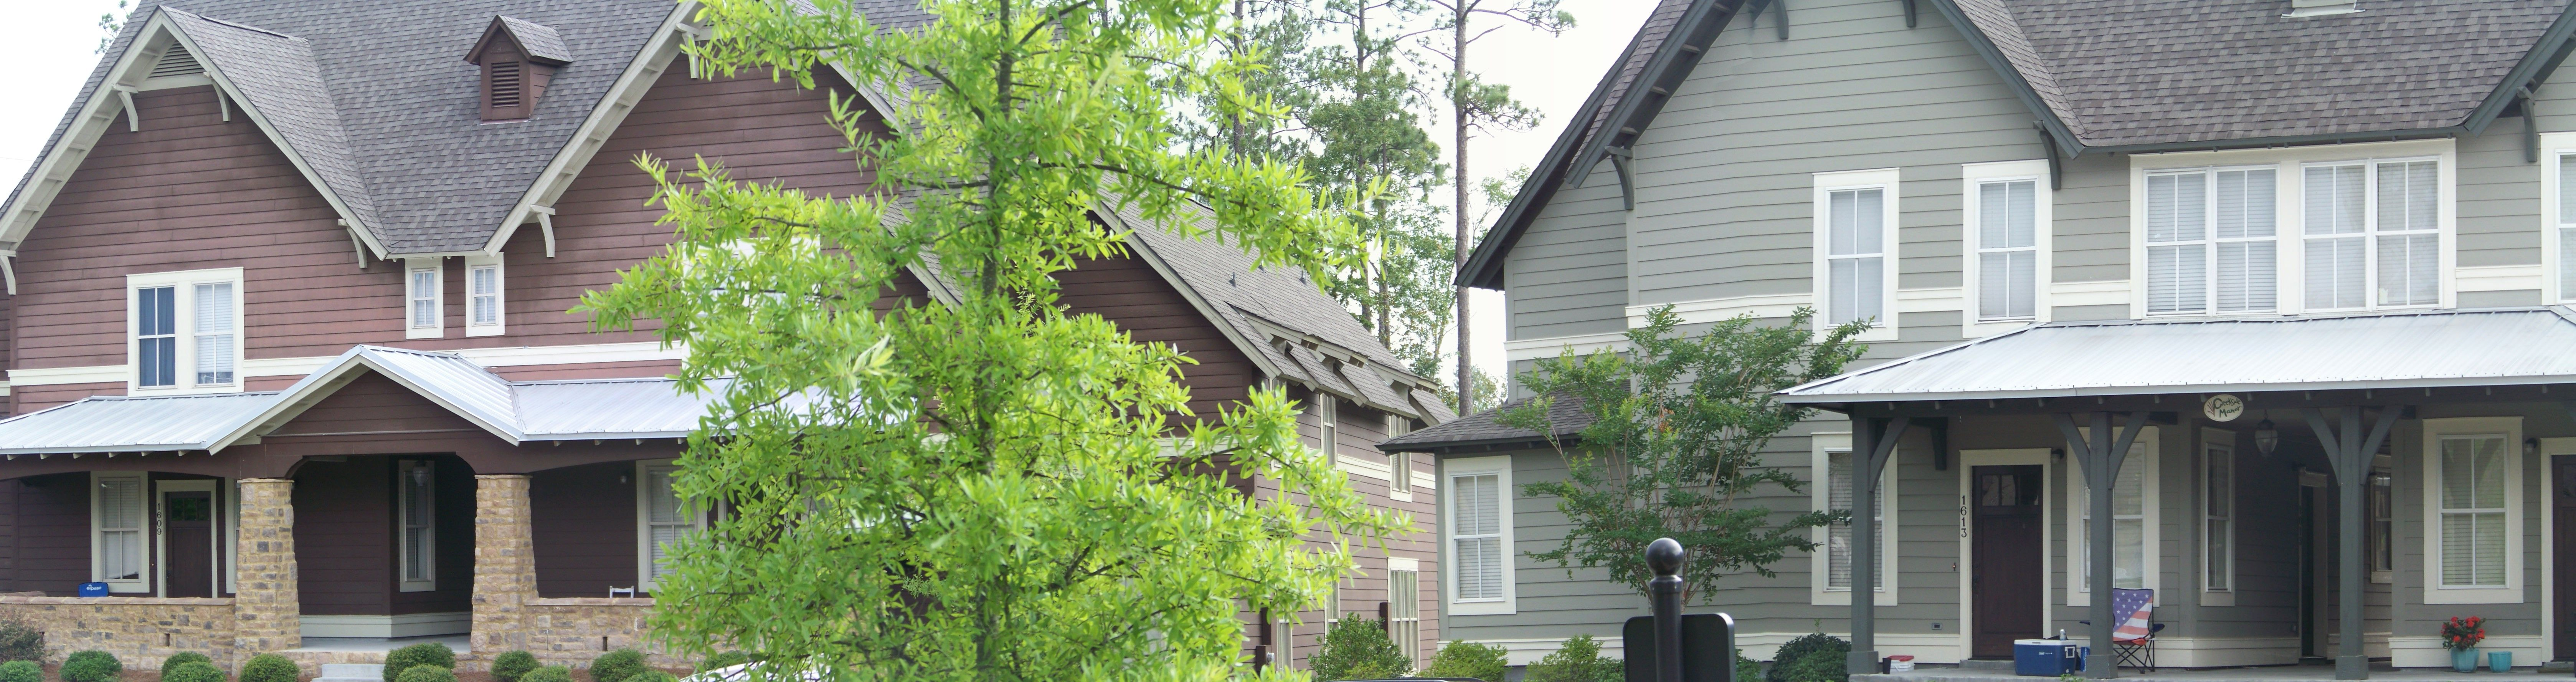 We Have 2 3 And 4 Bedroom Cottages As Well As 4 And 5 Bedroom Manors Pictured Here Outdoor Cottage Outdoor Decor